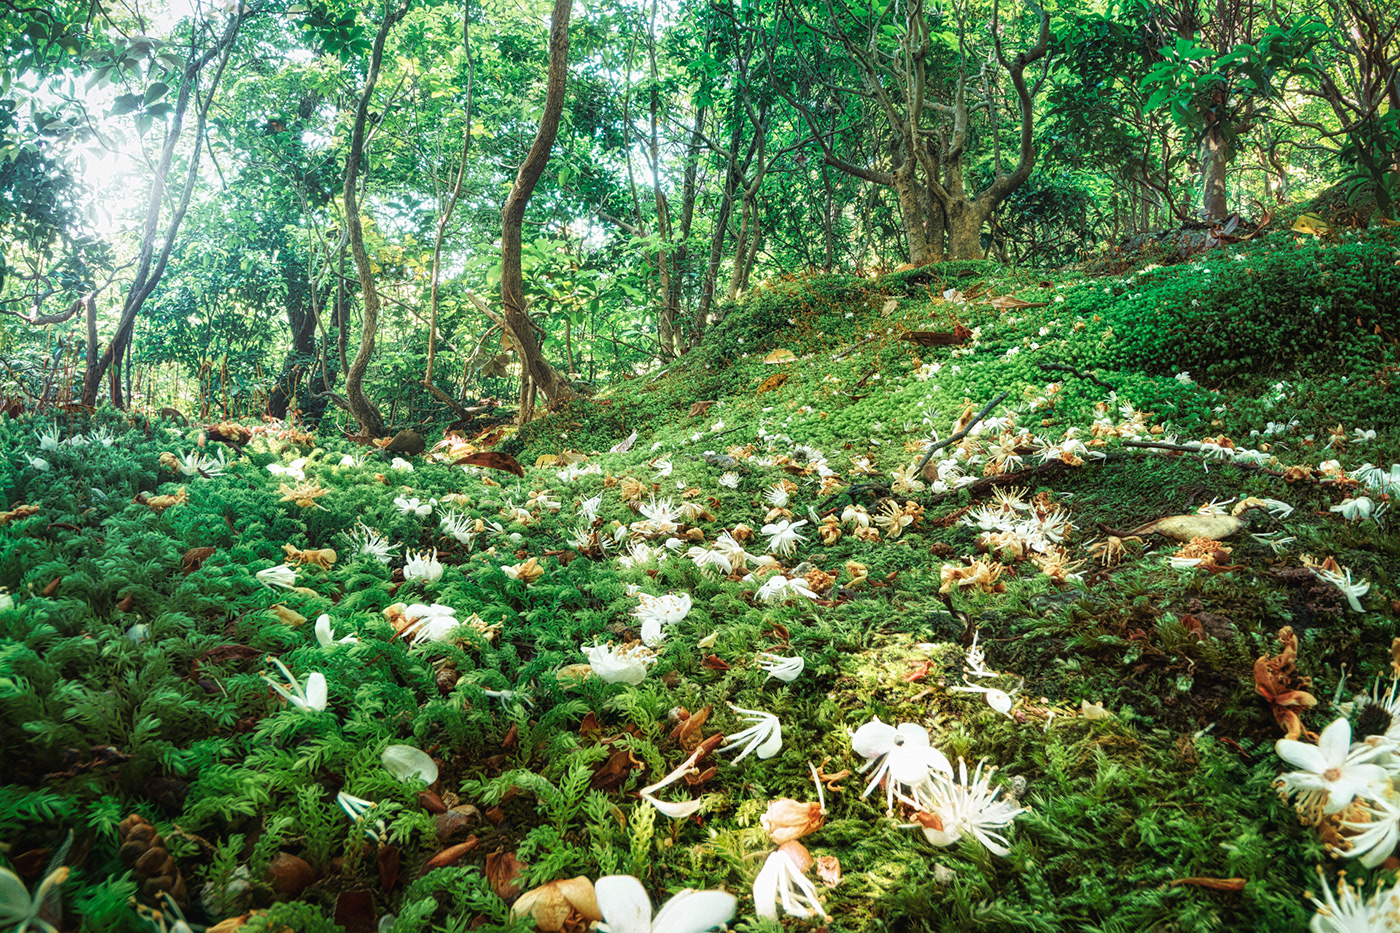 summer forest of dwarfs. Many small flowers fall from above.